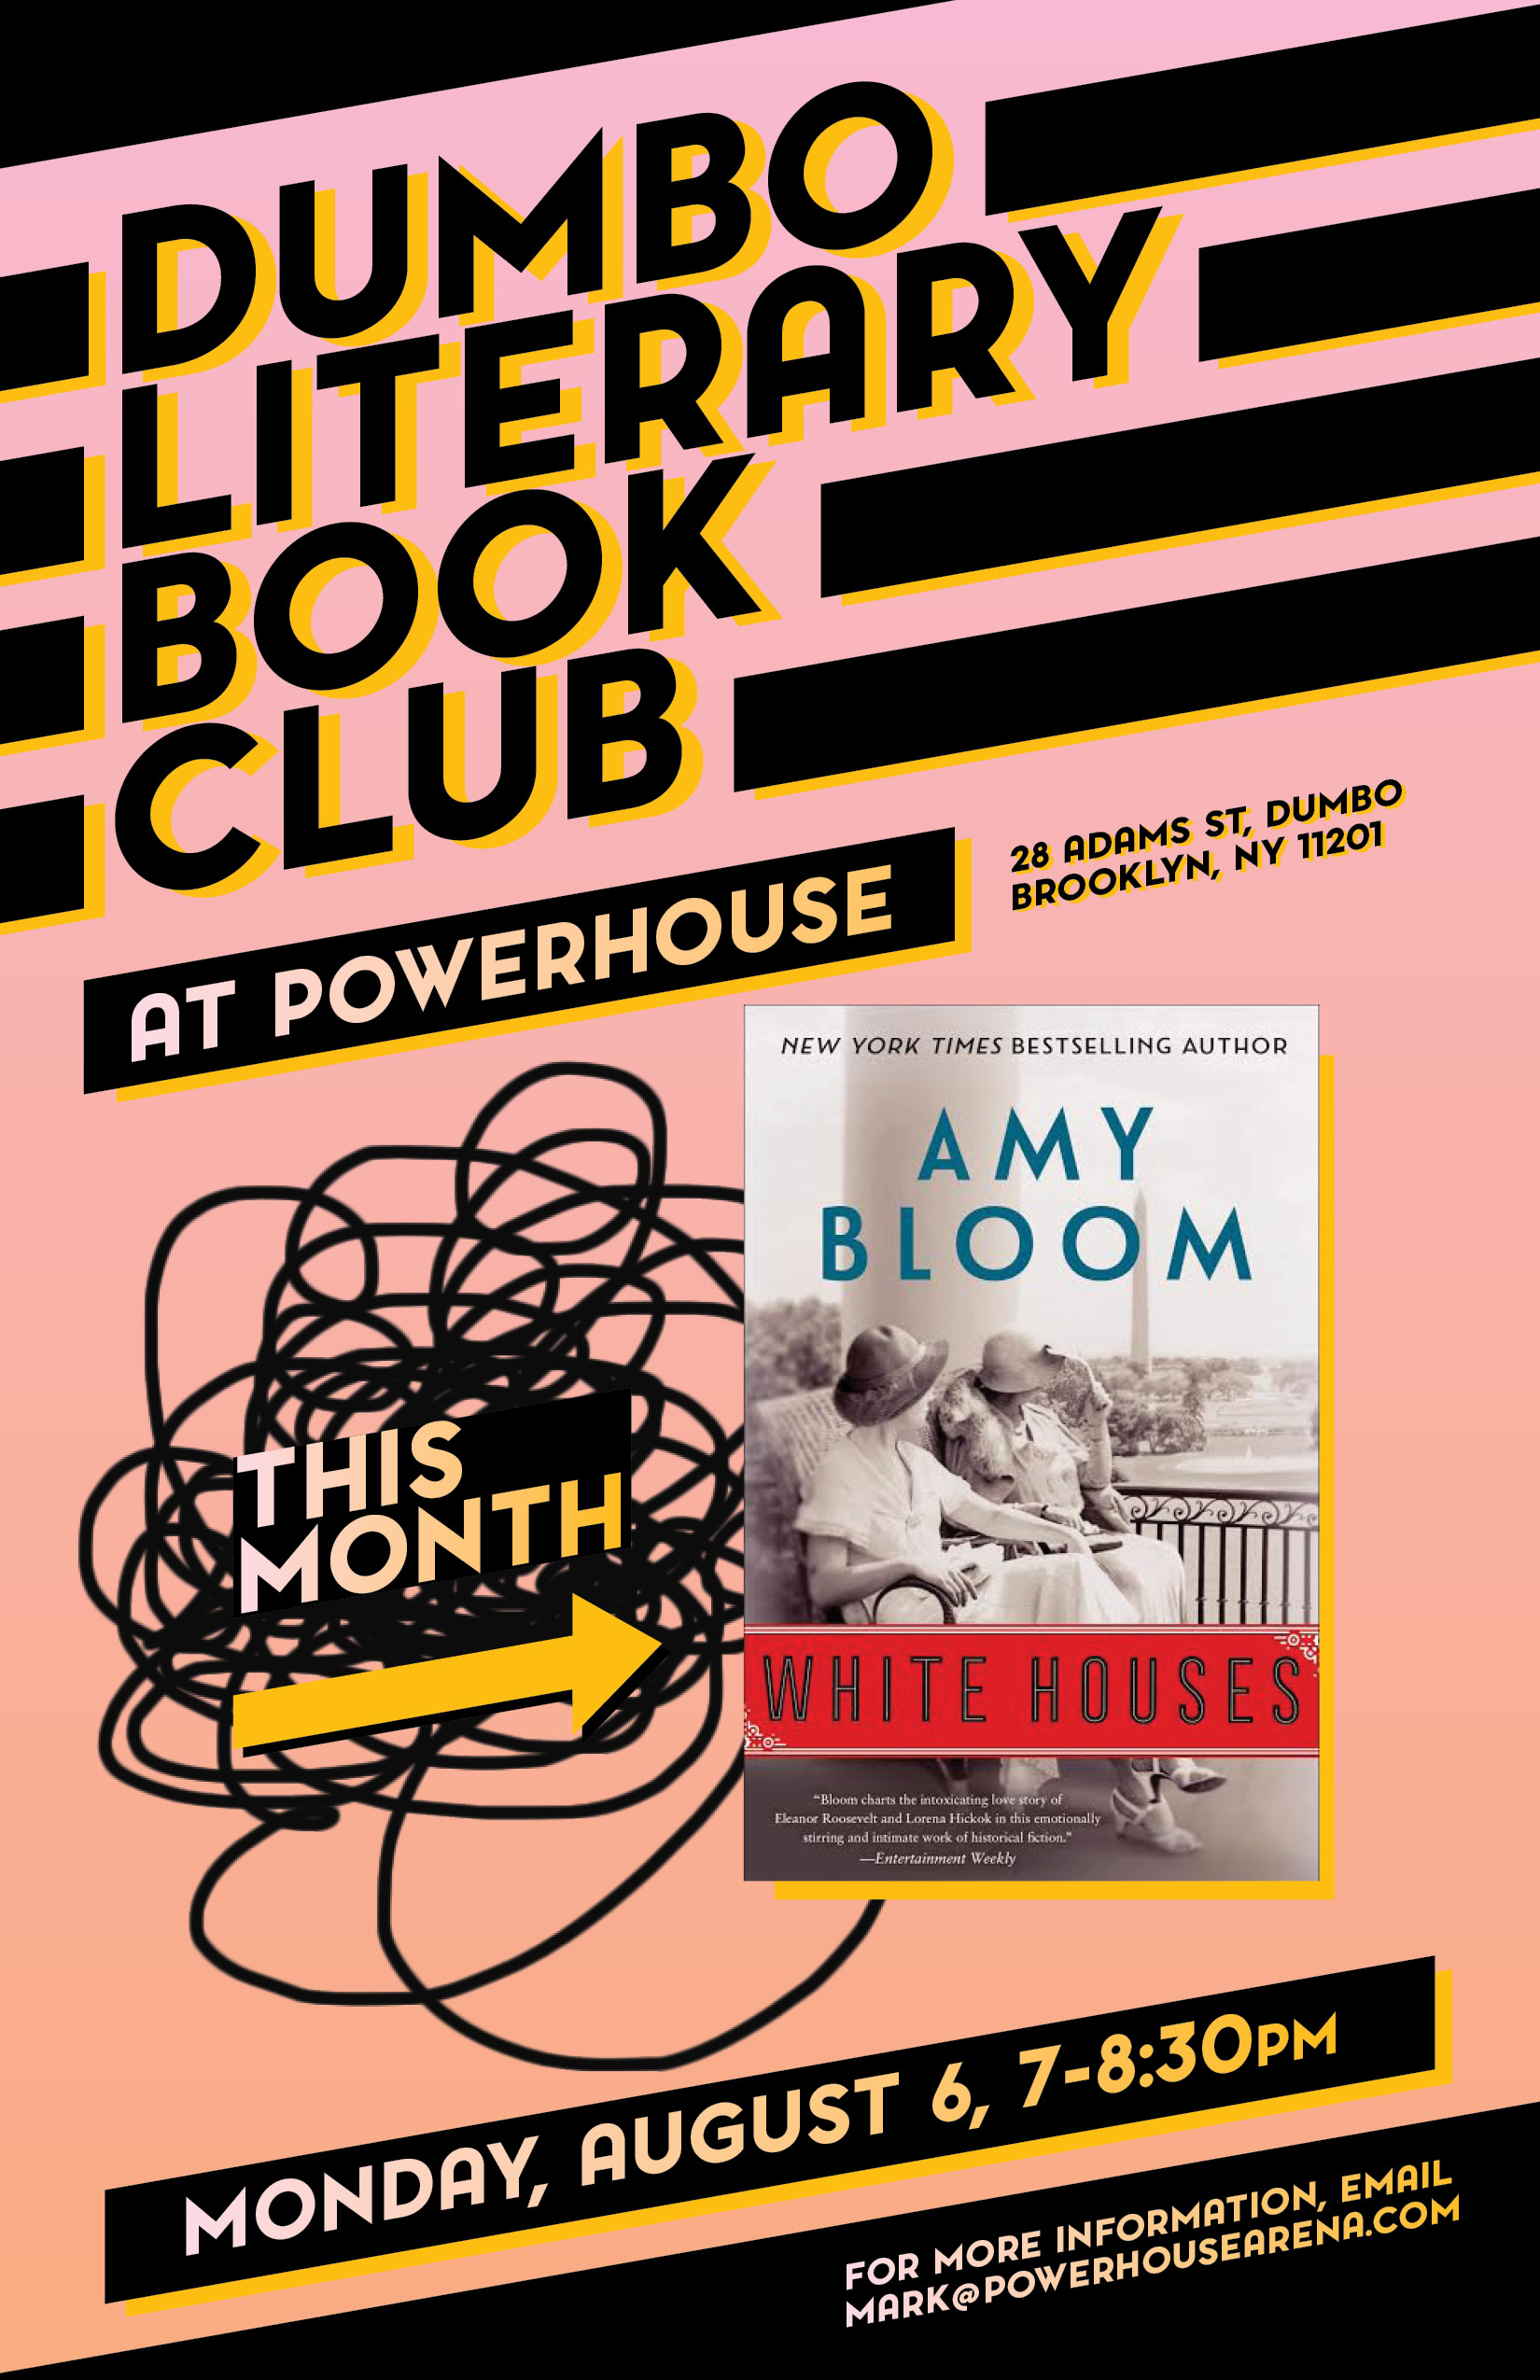 Dumbo Lit Book Club: White Houses by Amy Bloom